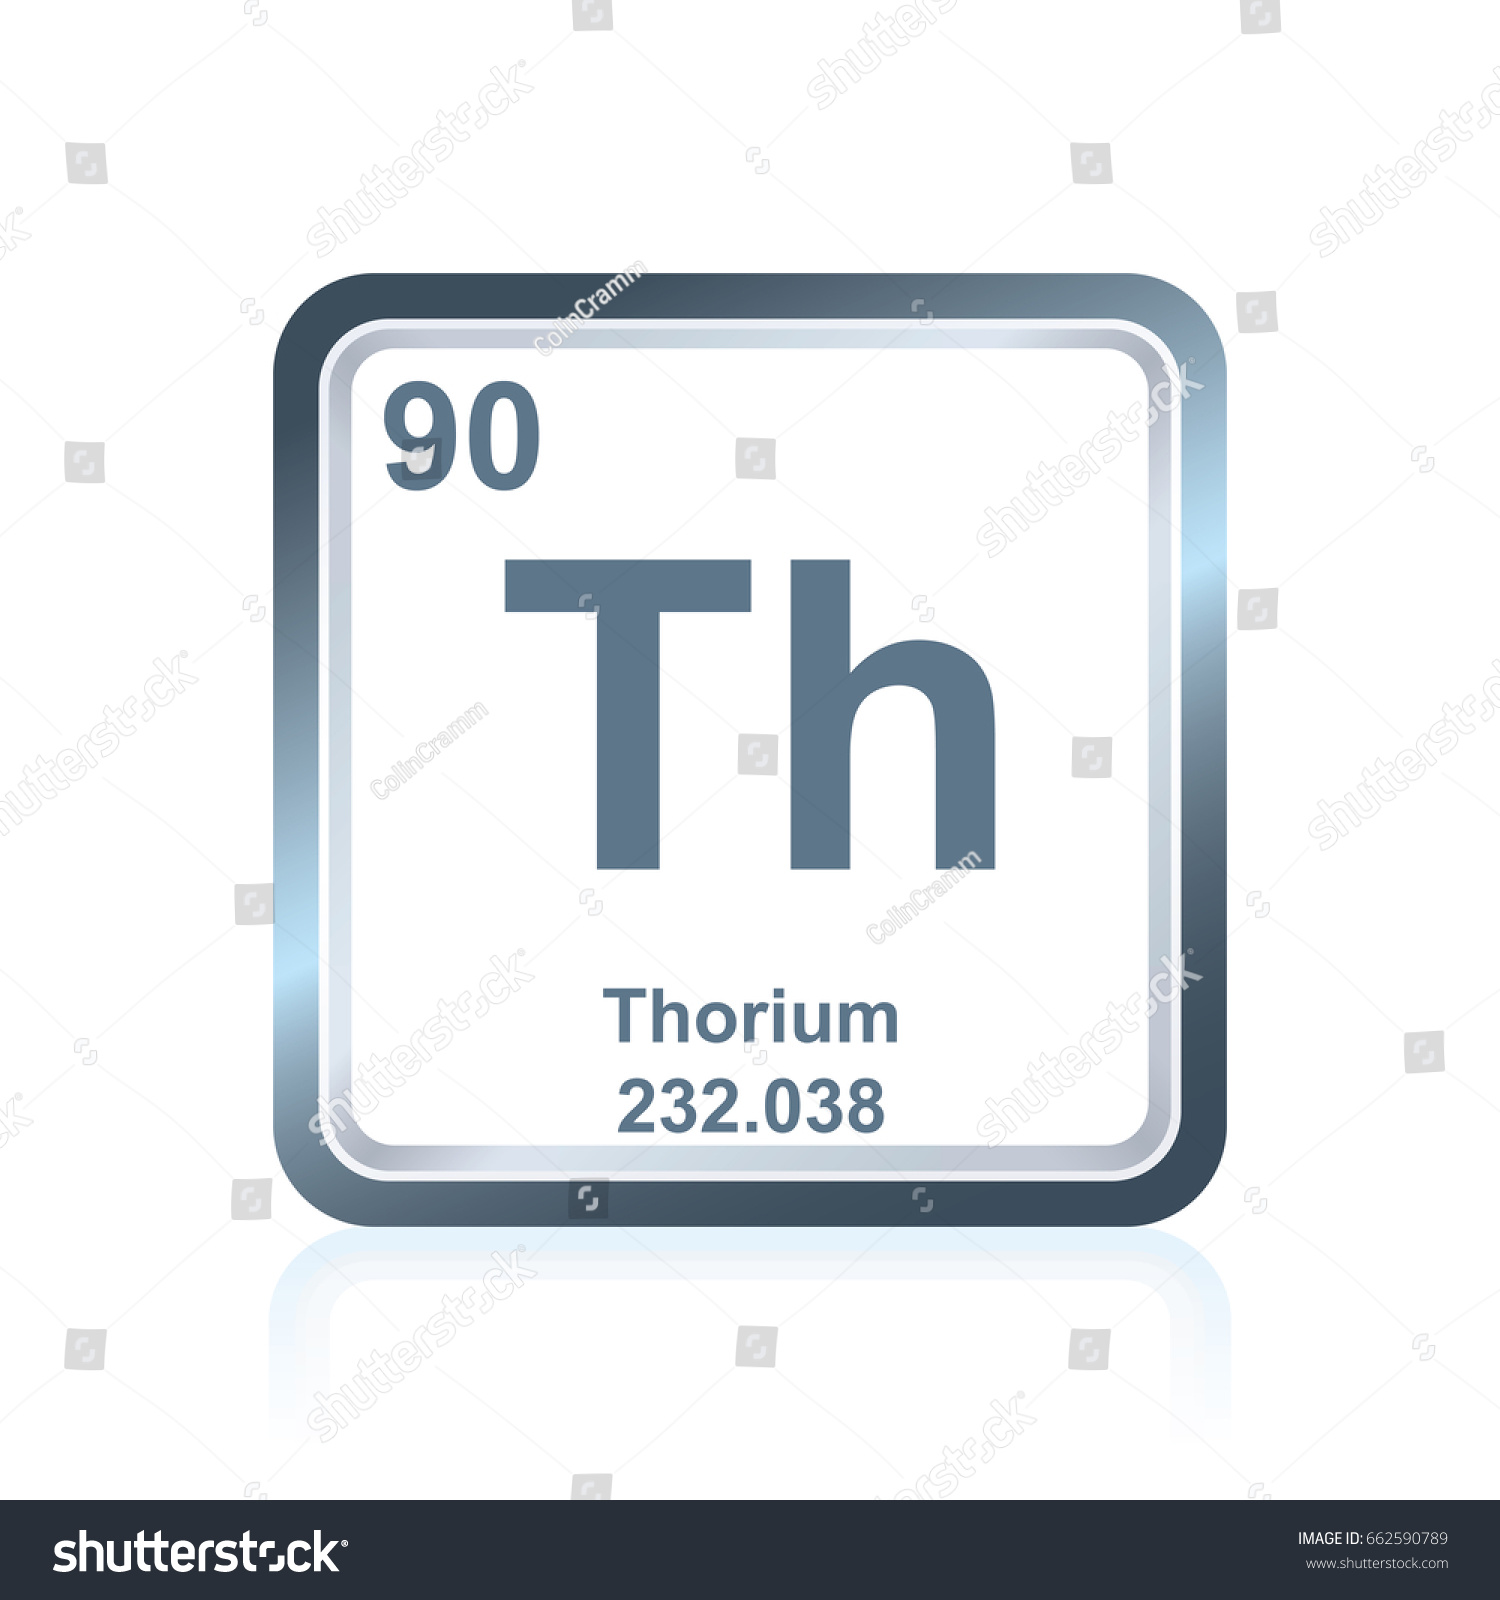 U symbol periodic table image collections periodic table images f symbol periodic table image collections periodic table images f symbol periodic table images periodic table gamestrikefo Image collections